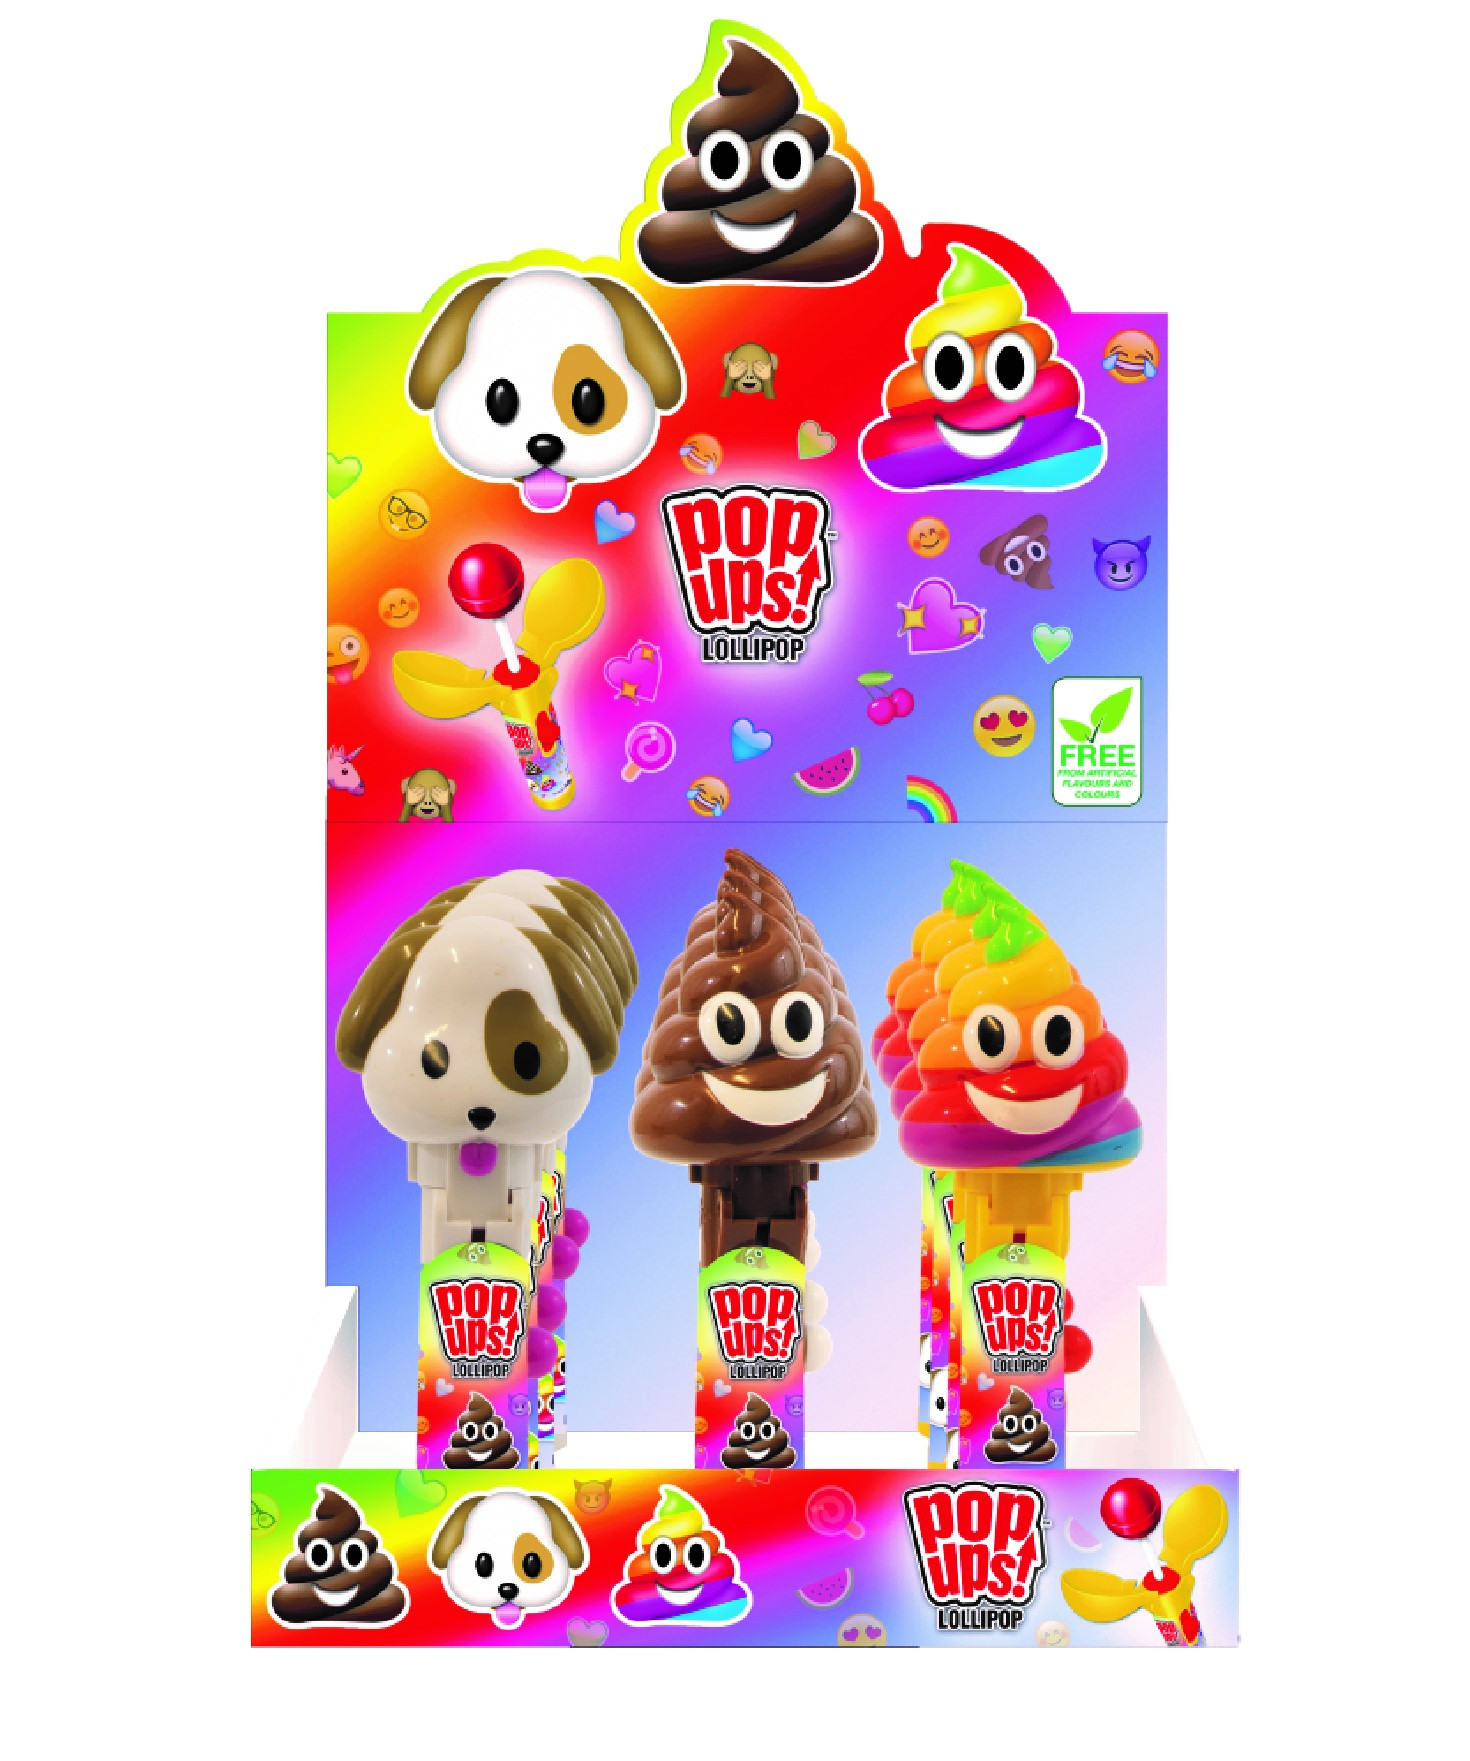 Alma fudge cartoon clipart black and white picture free library BIPMoji Pop Up Lollipops picture free library